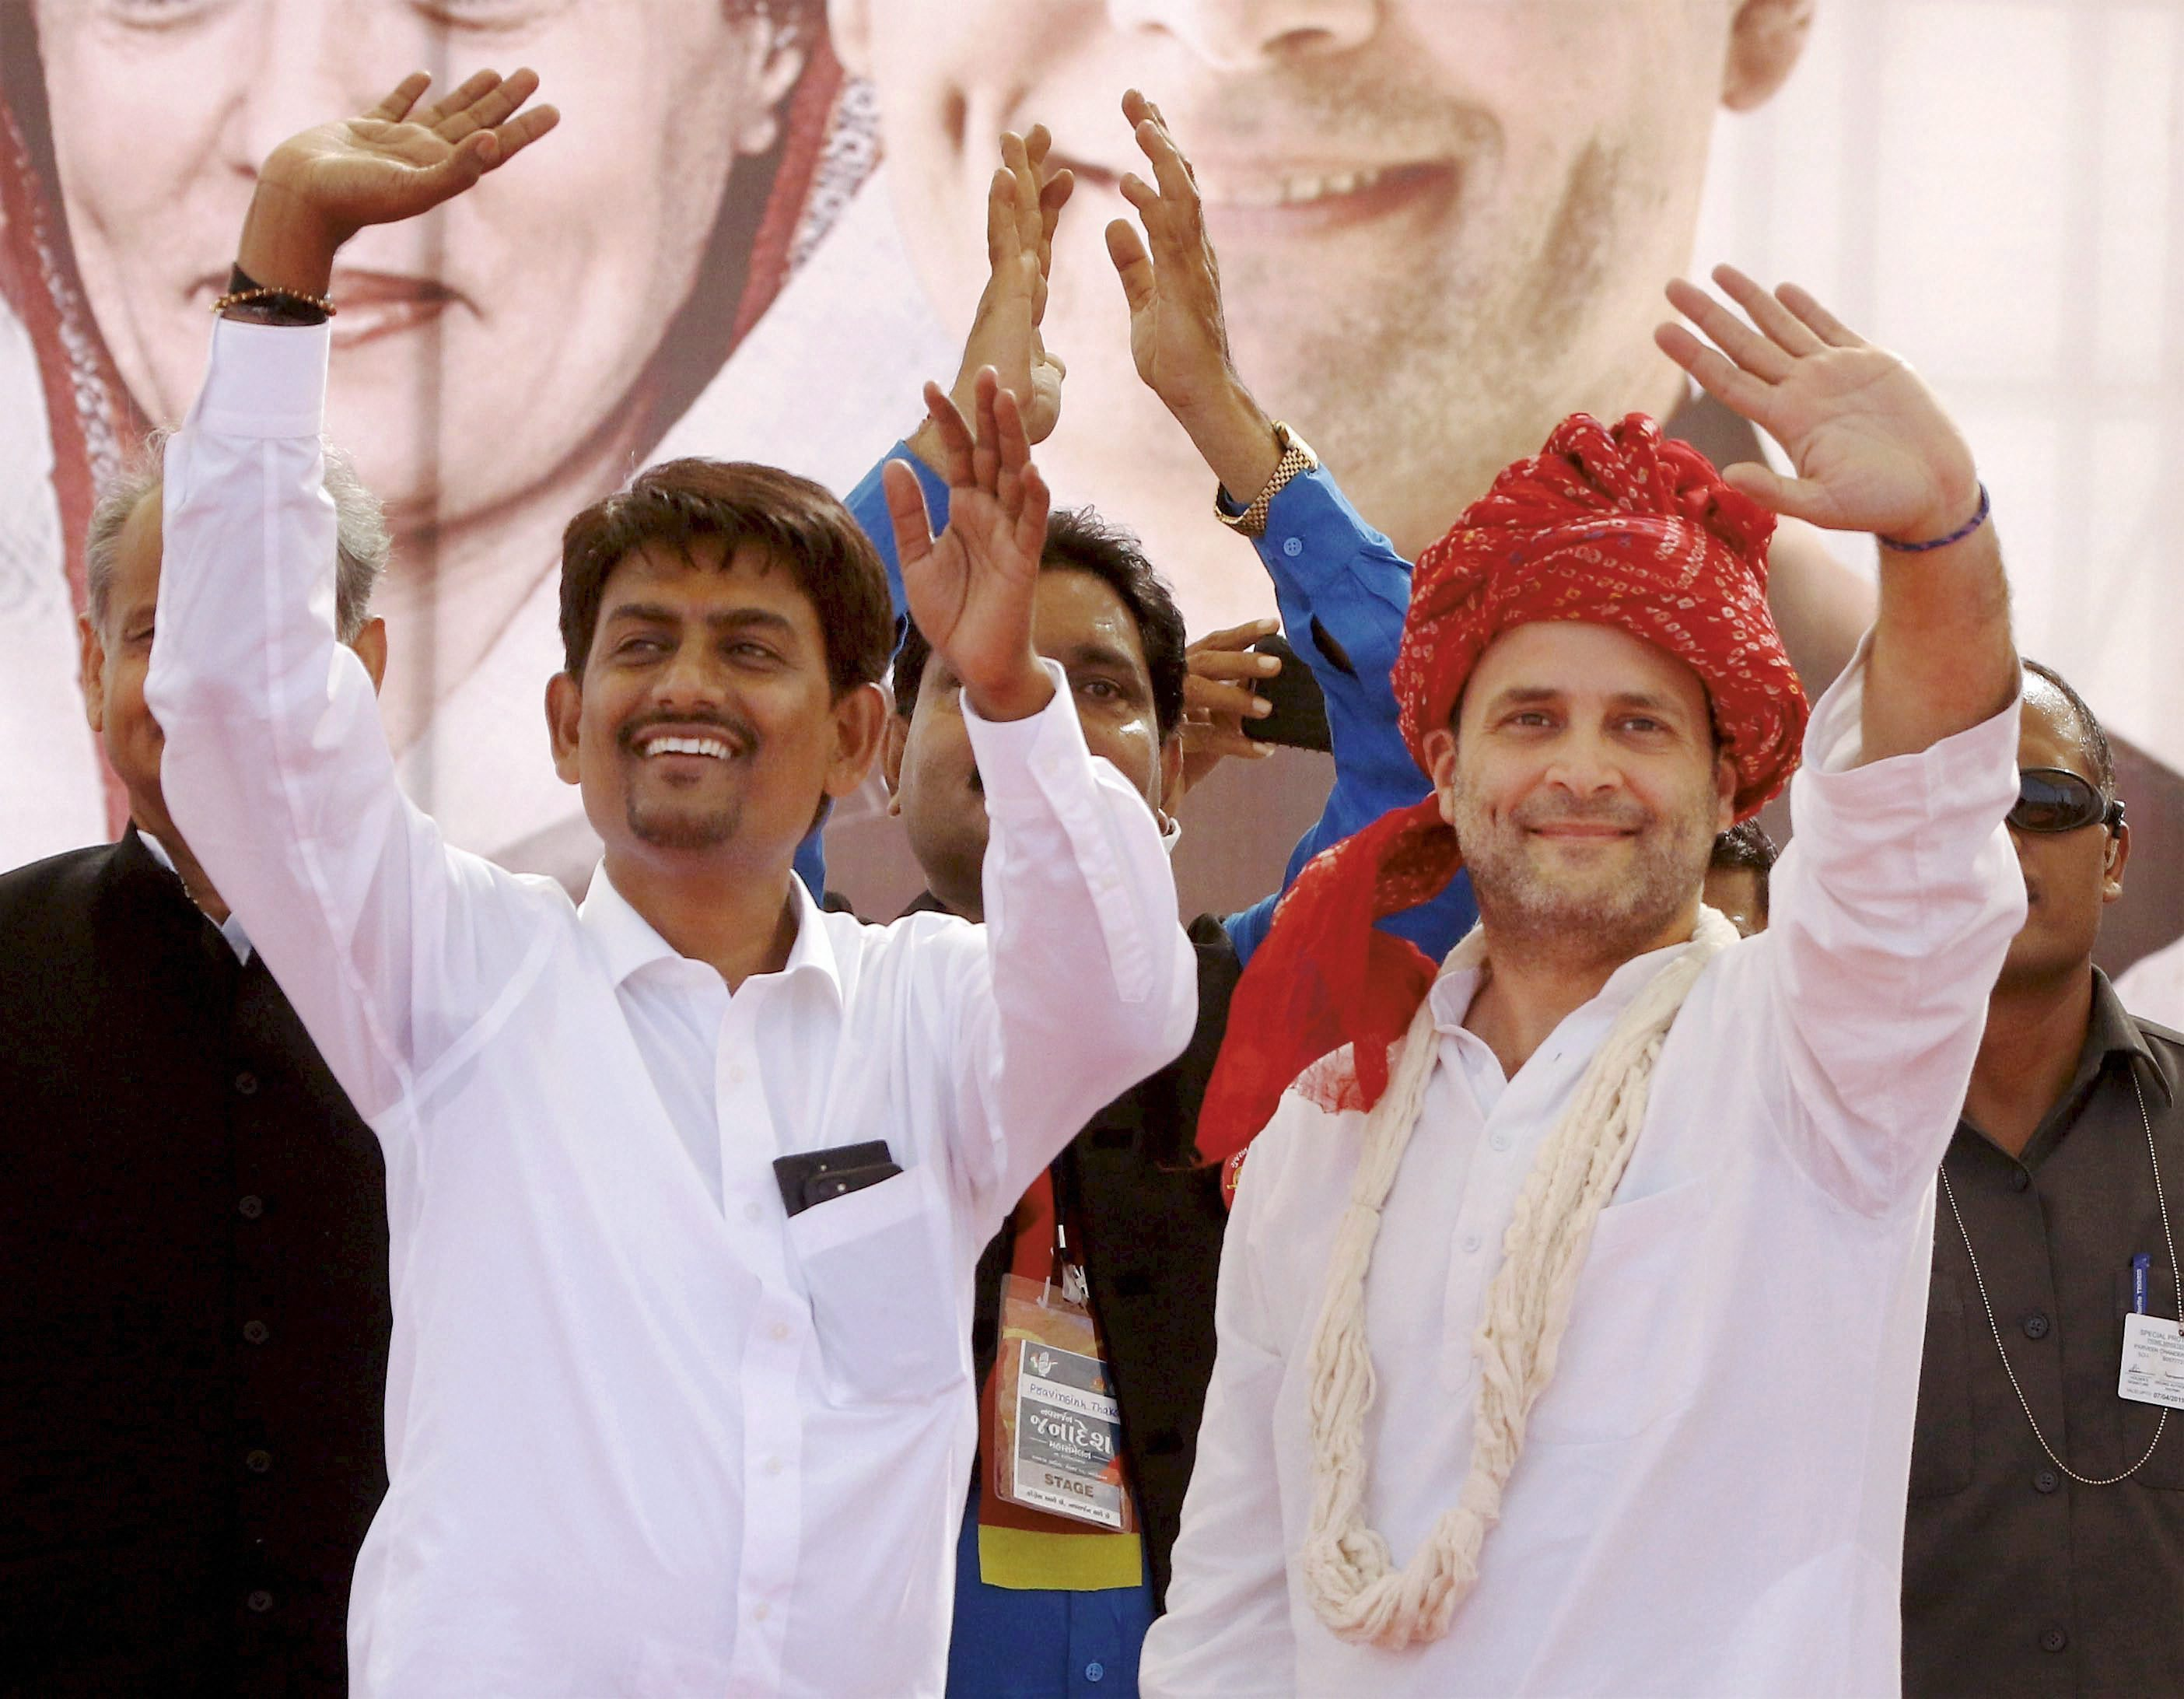 Gandhinagar: Congress vice-president Rahul Gandhi with the OBC leader Alpesh Thakor who joined the party, during a public meeting in Gandhinagar, Gujarat on Monday. PTI Photo (PTI10_23_2017_000118B)